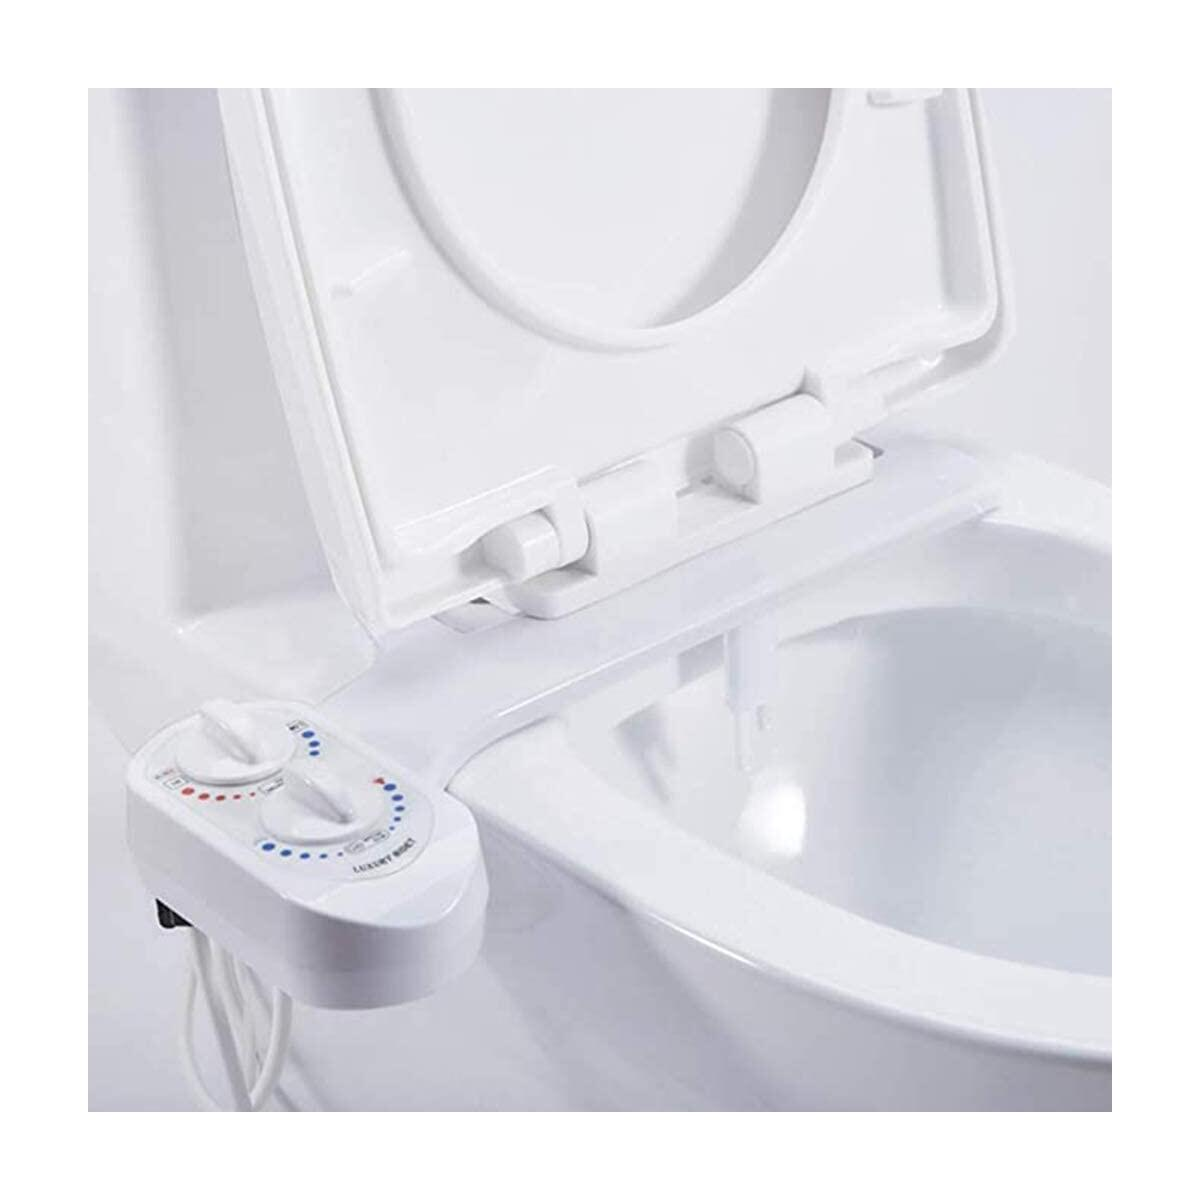 Flying Banana Home Bidet Sprayer For Toilet, Self-Cleaning and Retractable Nozzle, Hot and Cold Non-Electric Dual Nozzle Bidet Sprayer for Personal Cleansing Use